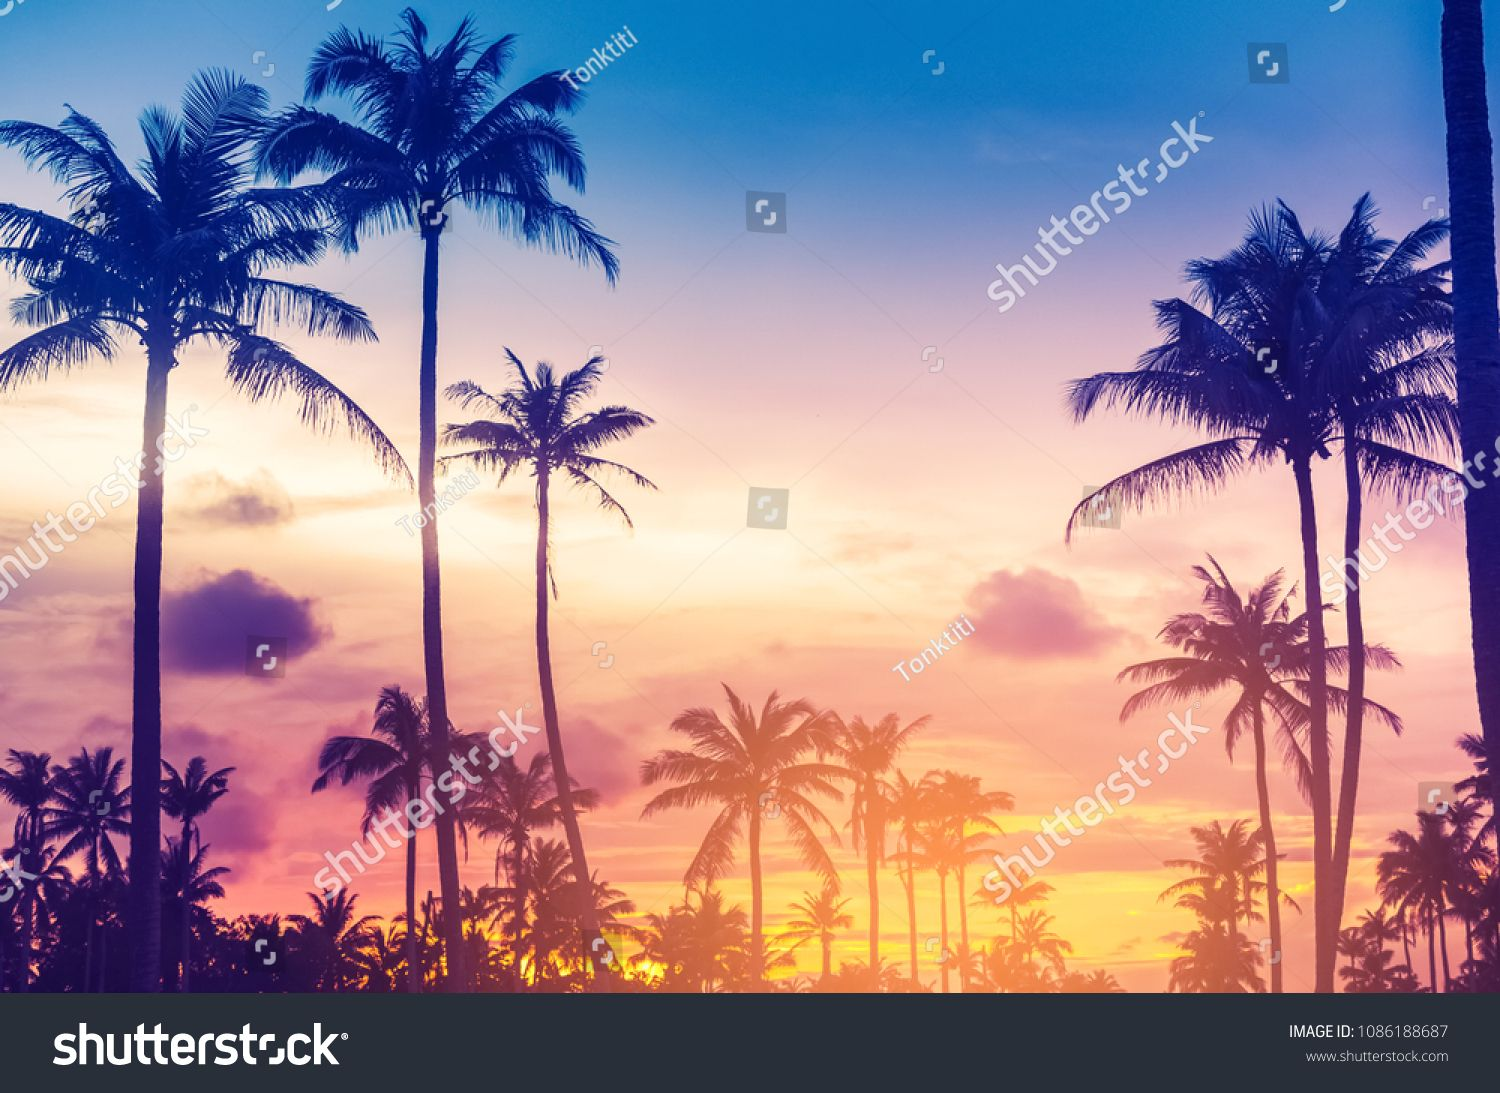 Copy Space Of Silhouette Tropical Palm Tree With Sun Light On Sunset Sky And Cloud Abstract Backgro Abstract Backgrounds Sky And Clouds Nature Travel Adventure Tropics palm trees sunset clouds sky